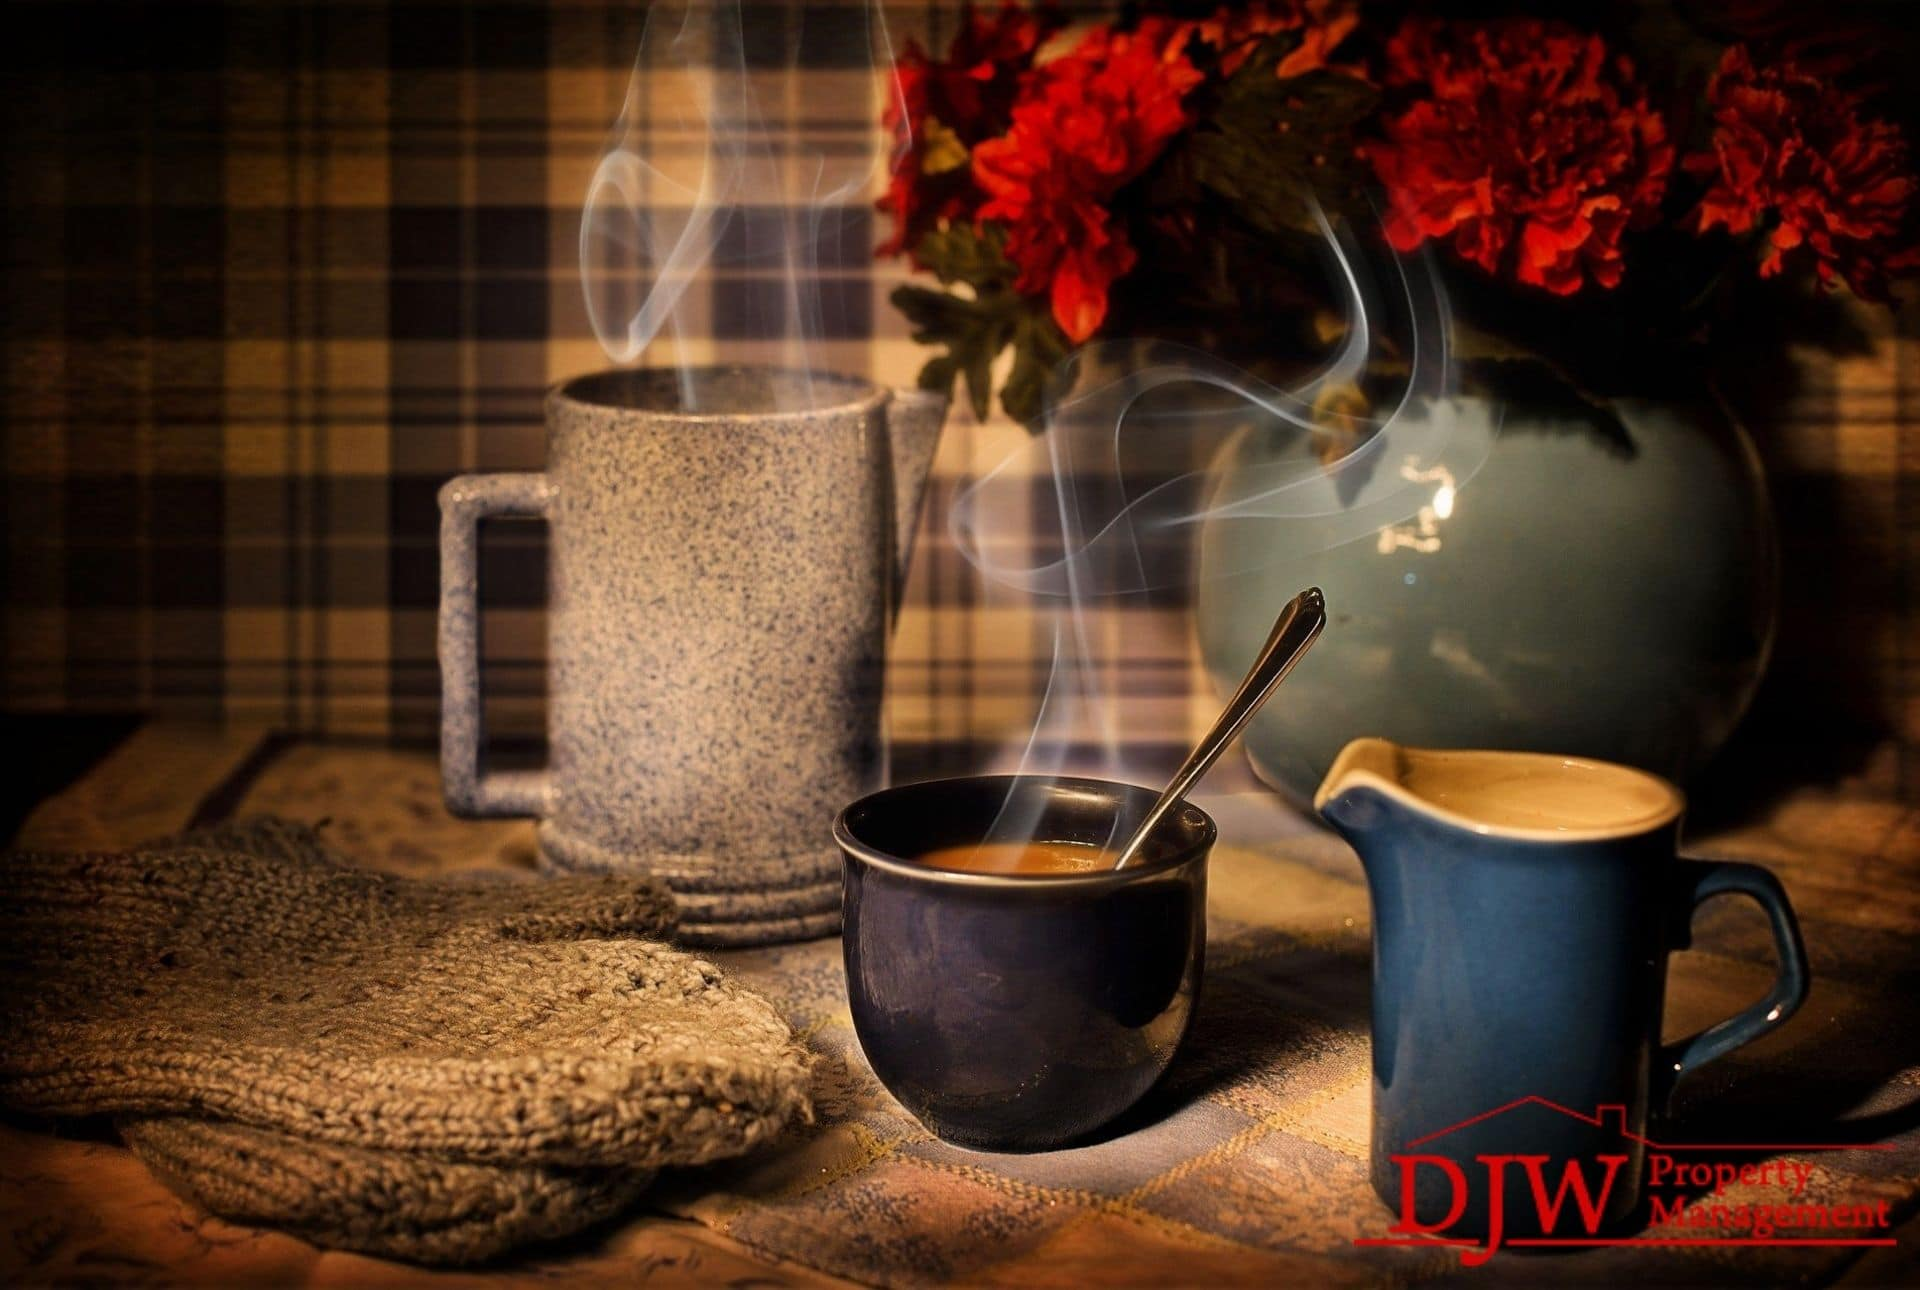 Hot coffee gives a cozy feel to a cold day in your home.